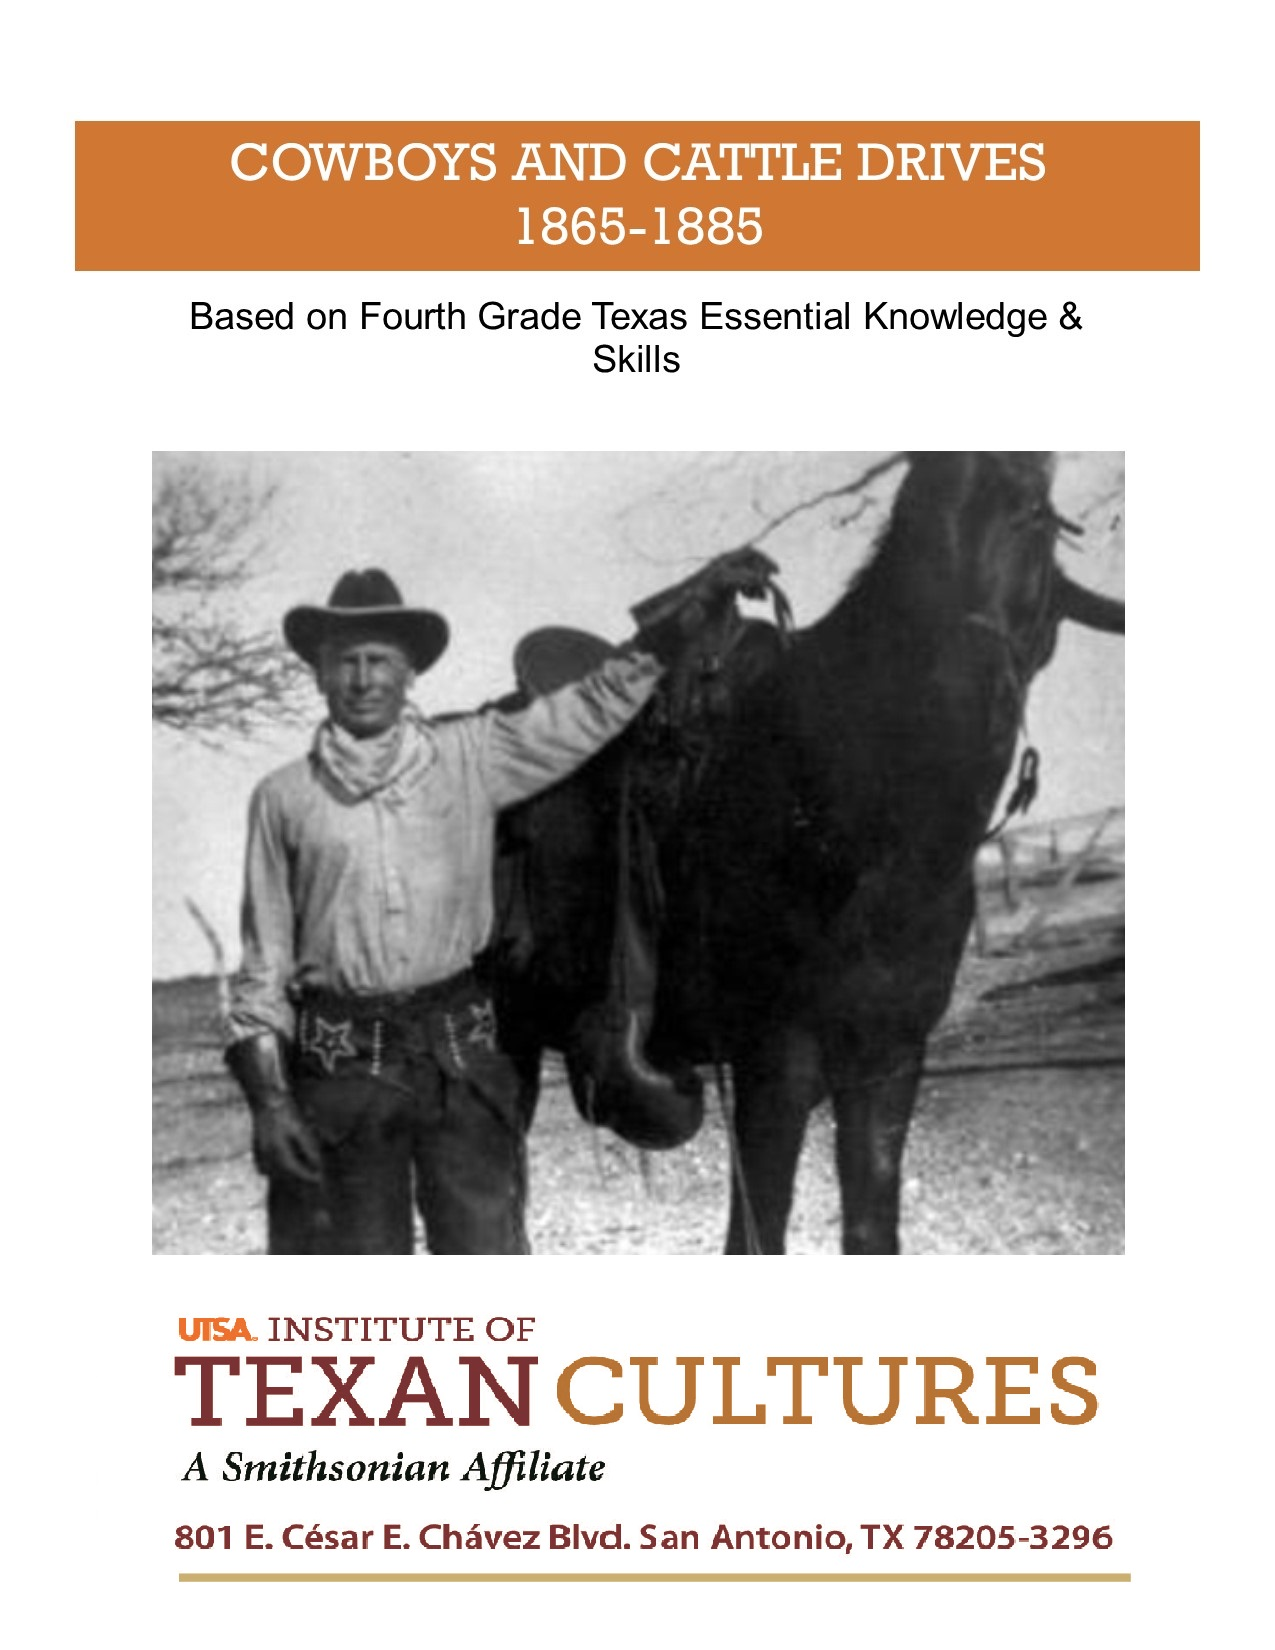 Cowboys and Cattle Drives, 1865-1885 | UTSA Institute Of Texan Cultures